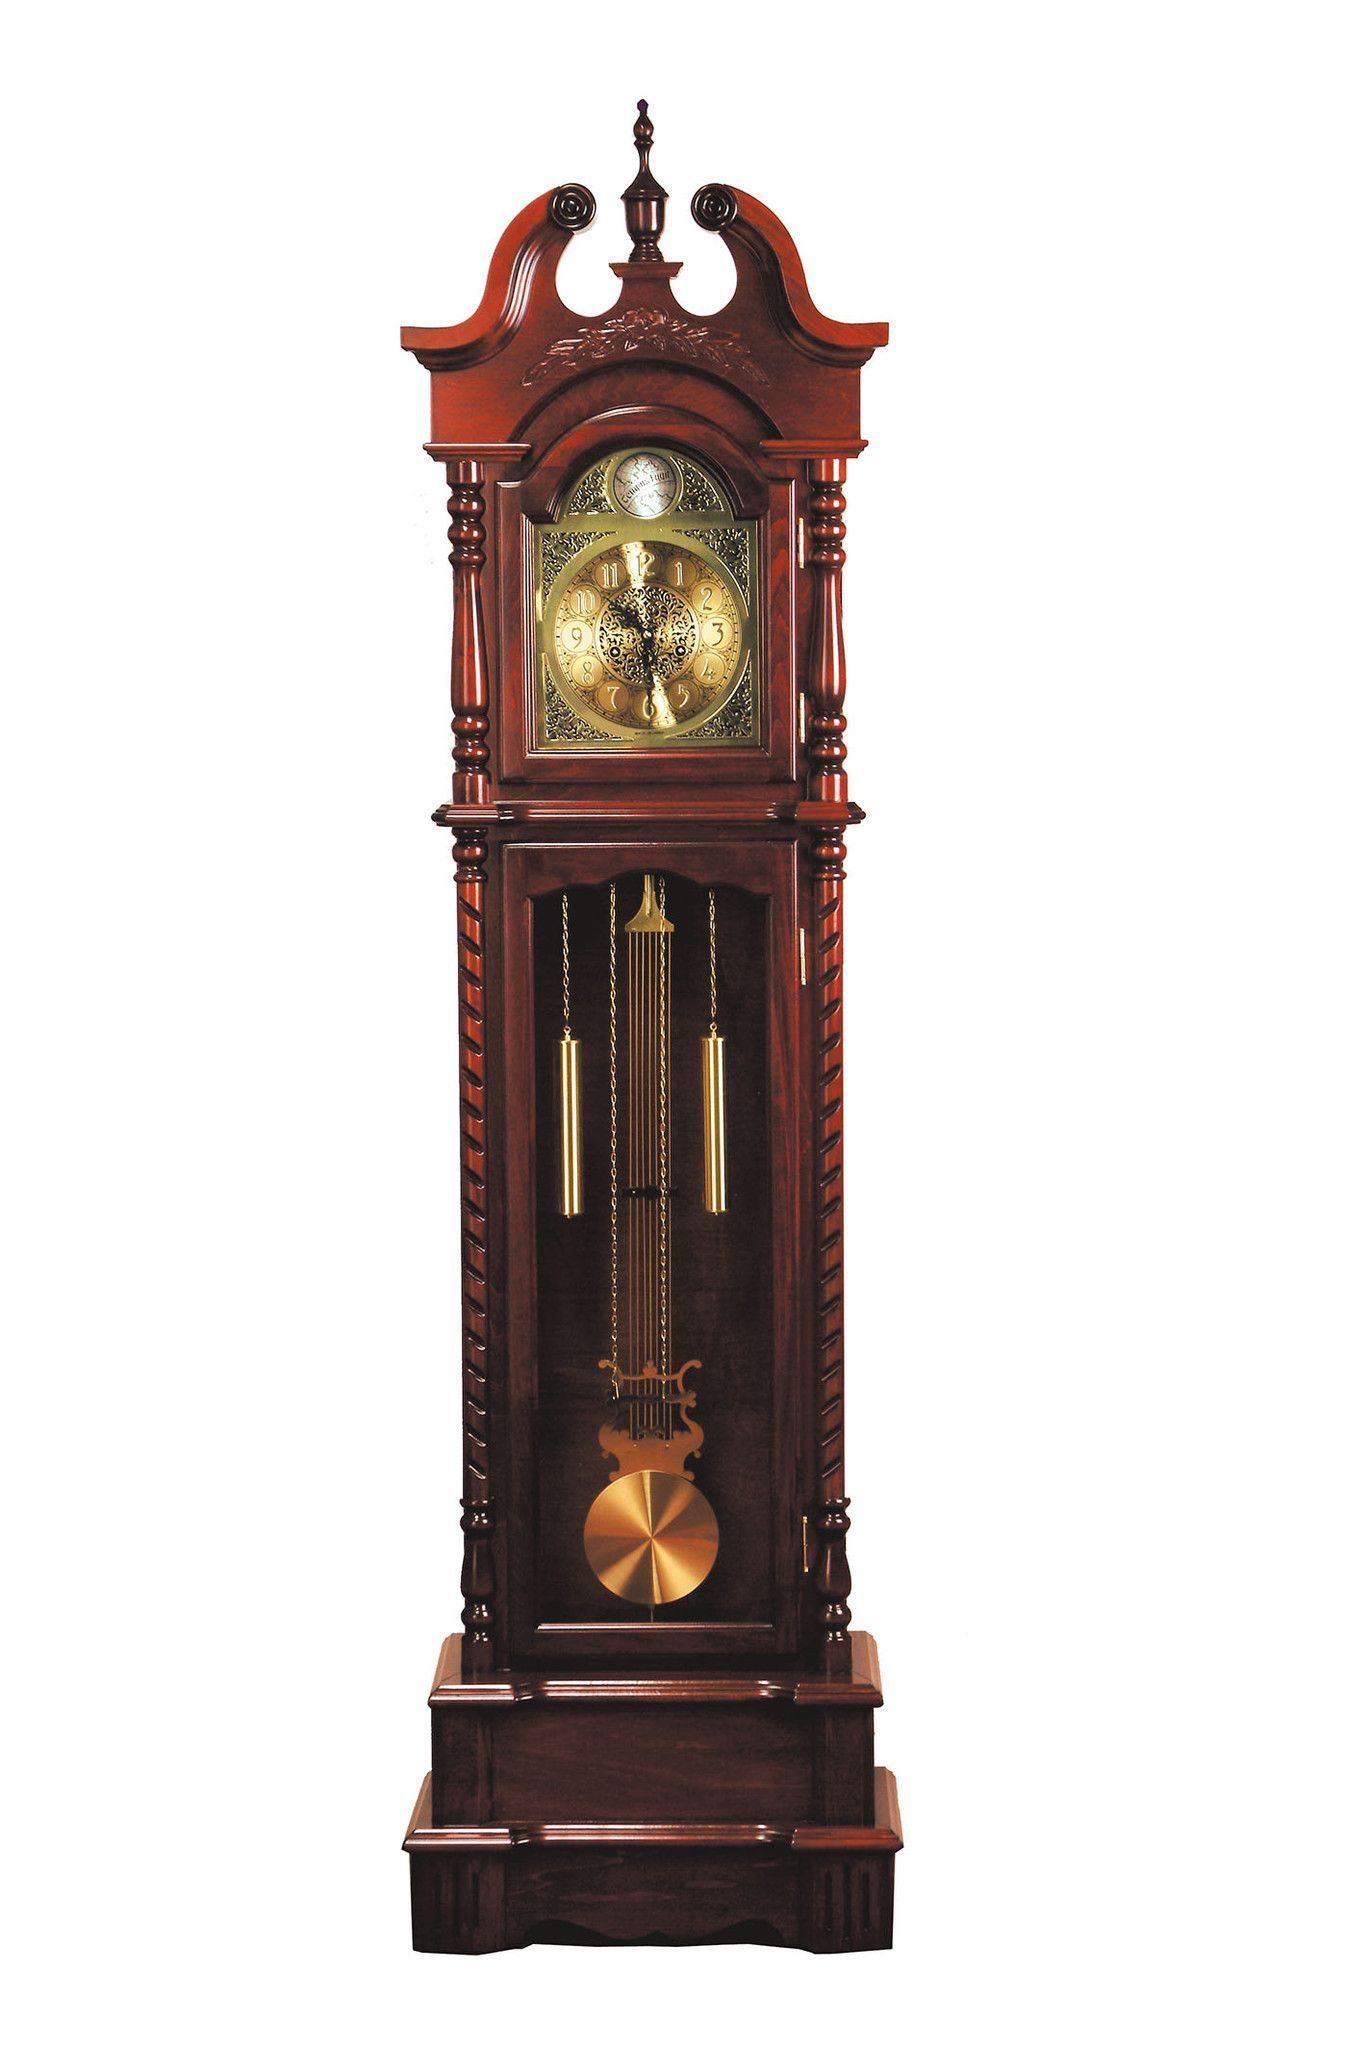 Wall Hanging Grandfather Clock sligh - trend grandfather clock for sale (2nd hand) sligh model